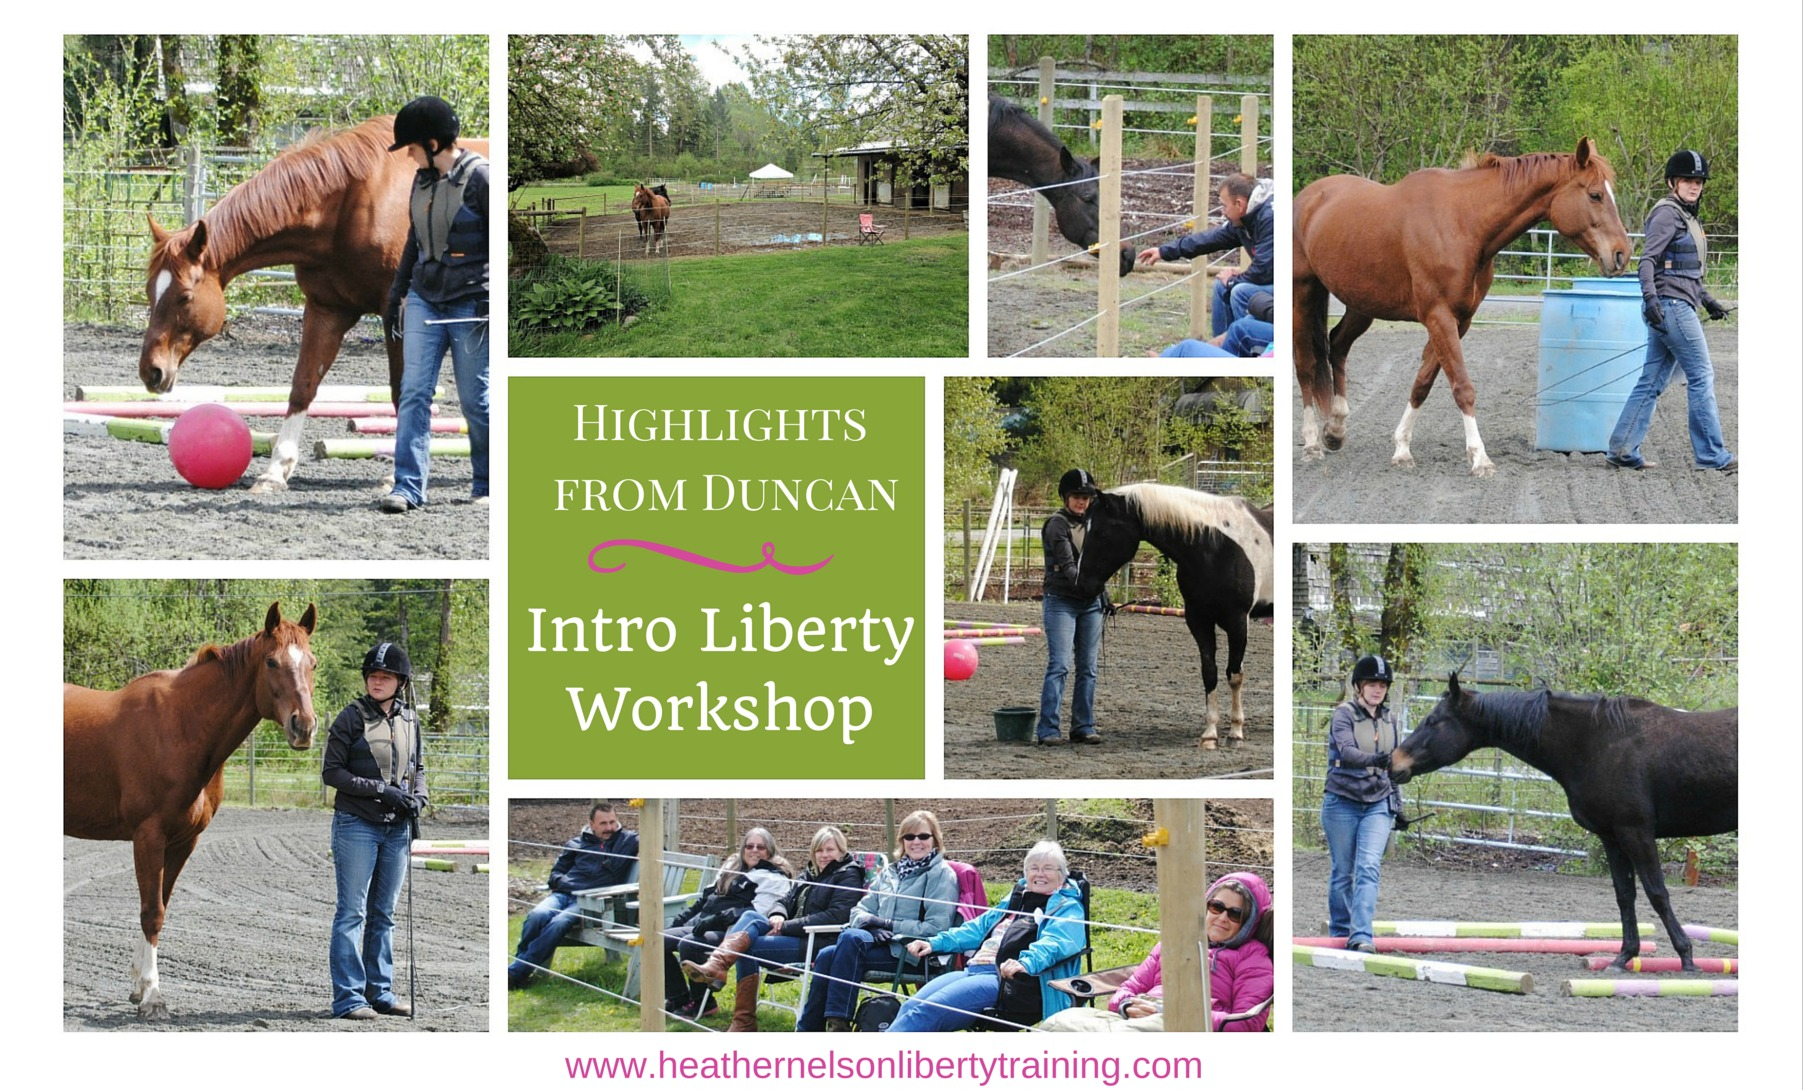 Heather_nelson_liberty_training_workshop_duncan_april_2015